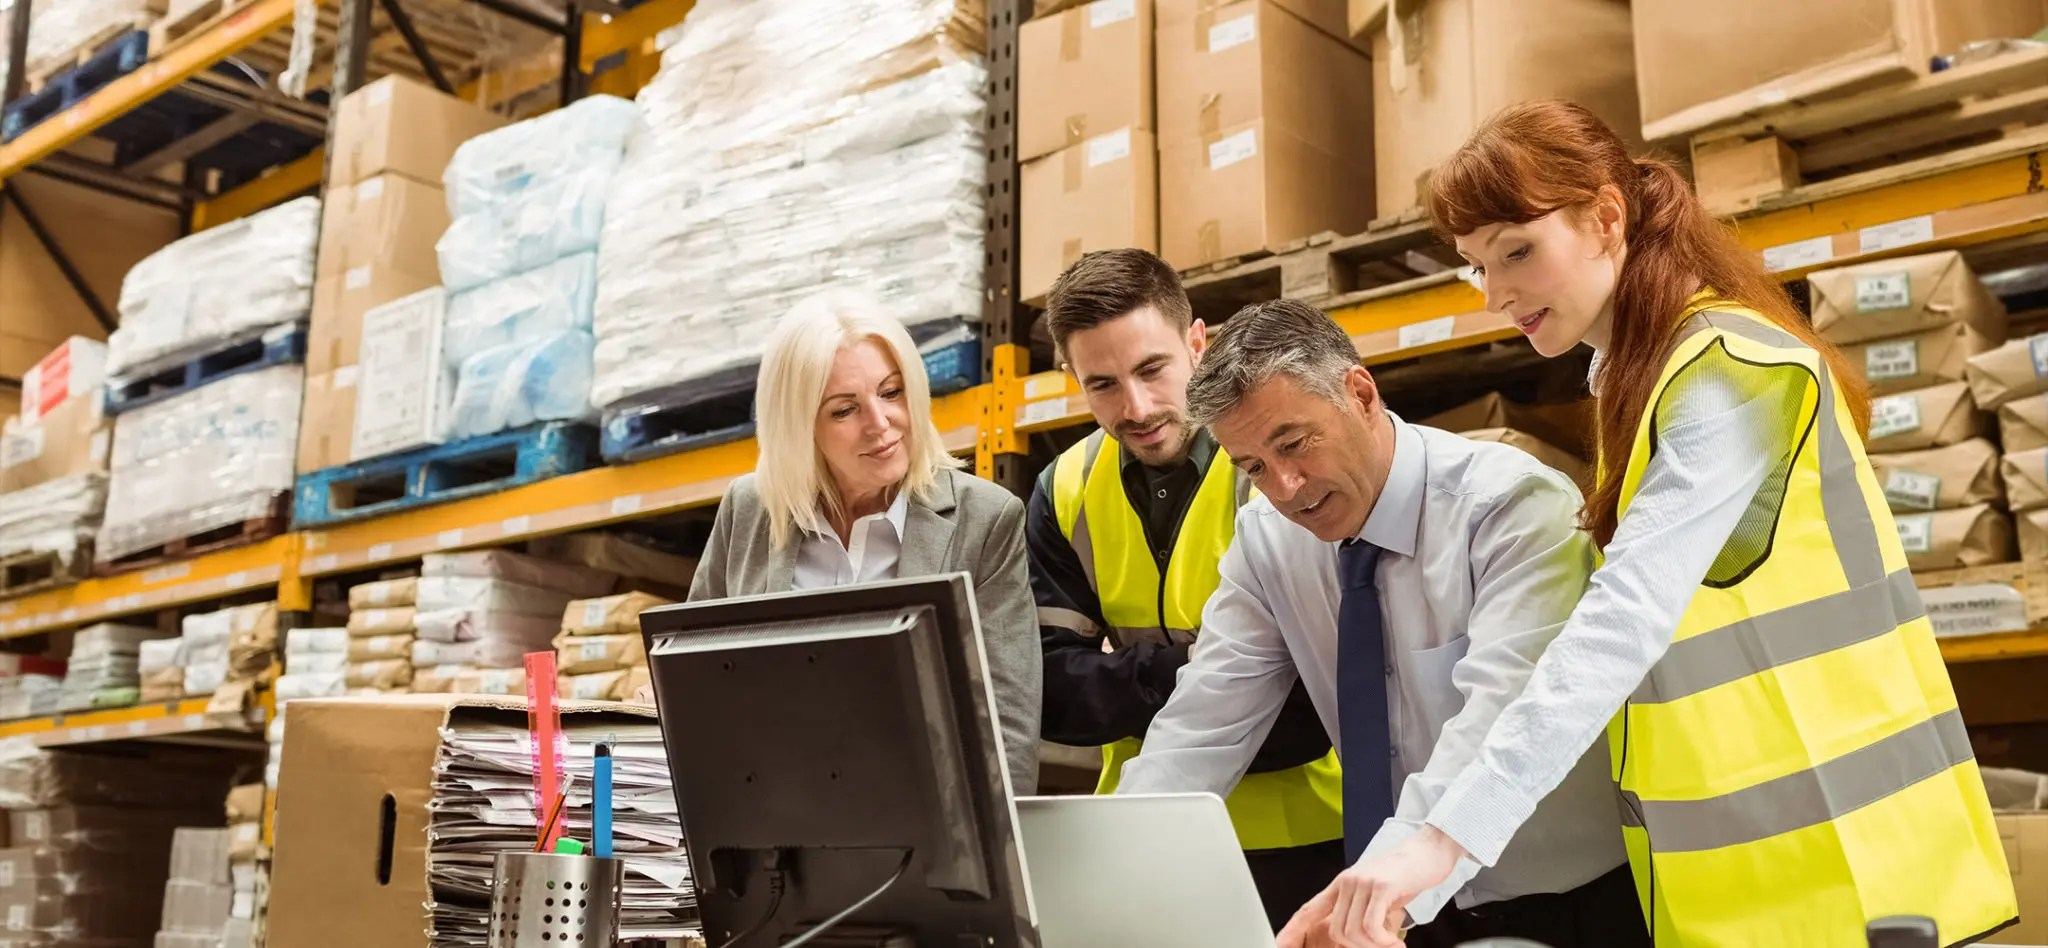 Warehouse managers and worker talking around a computer.